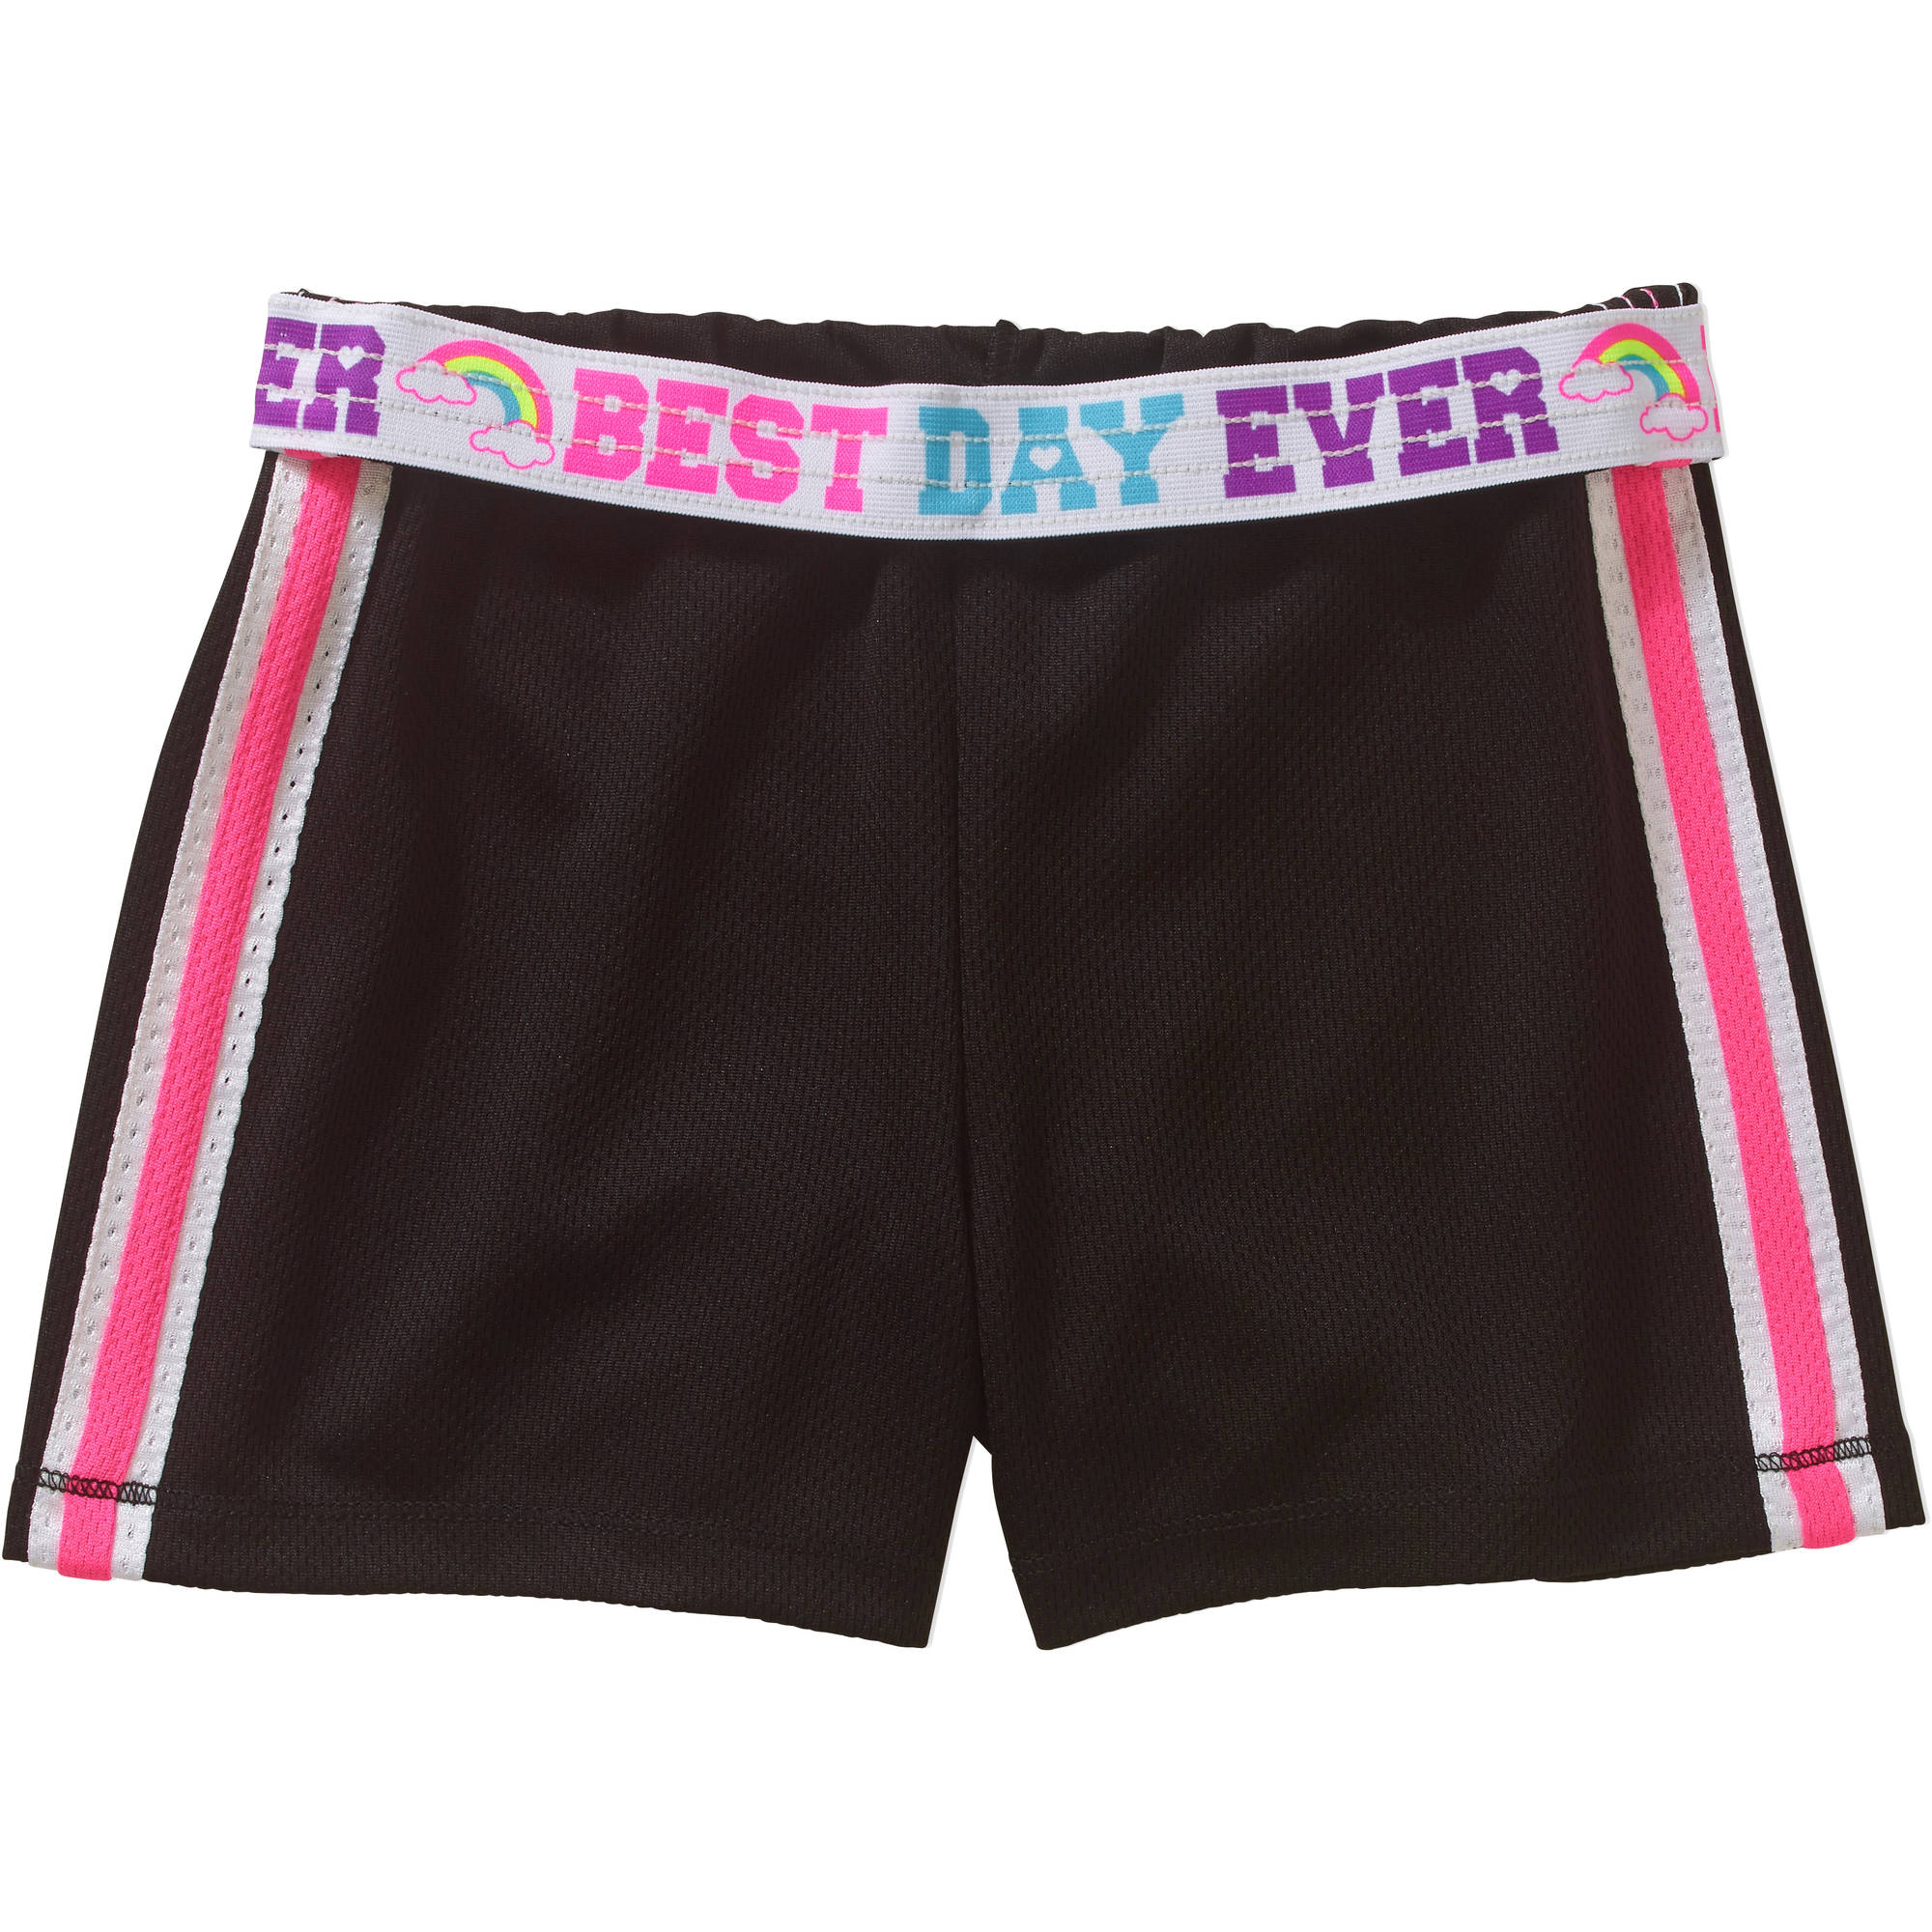 Faded Glory Girls' Solid Mesh Shorts